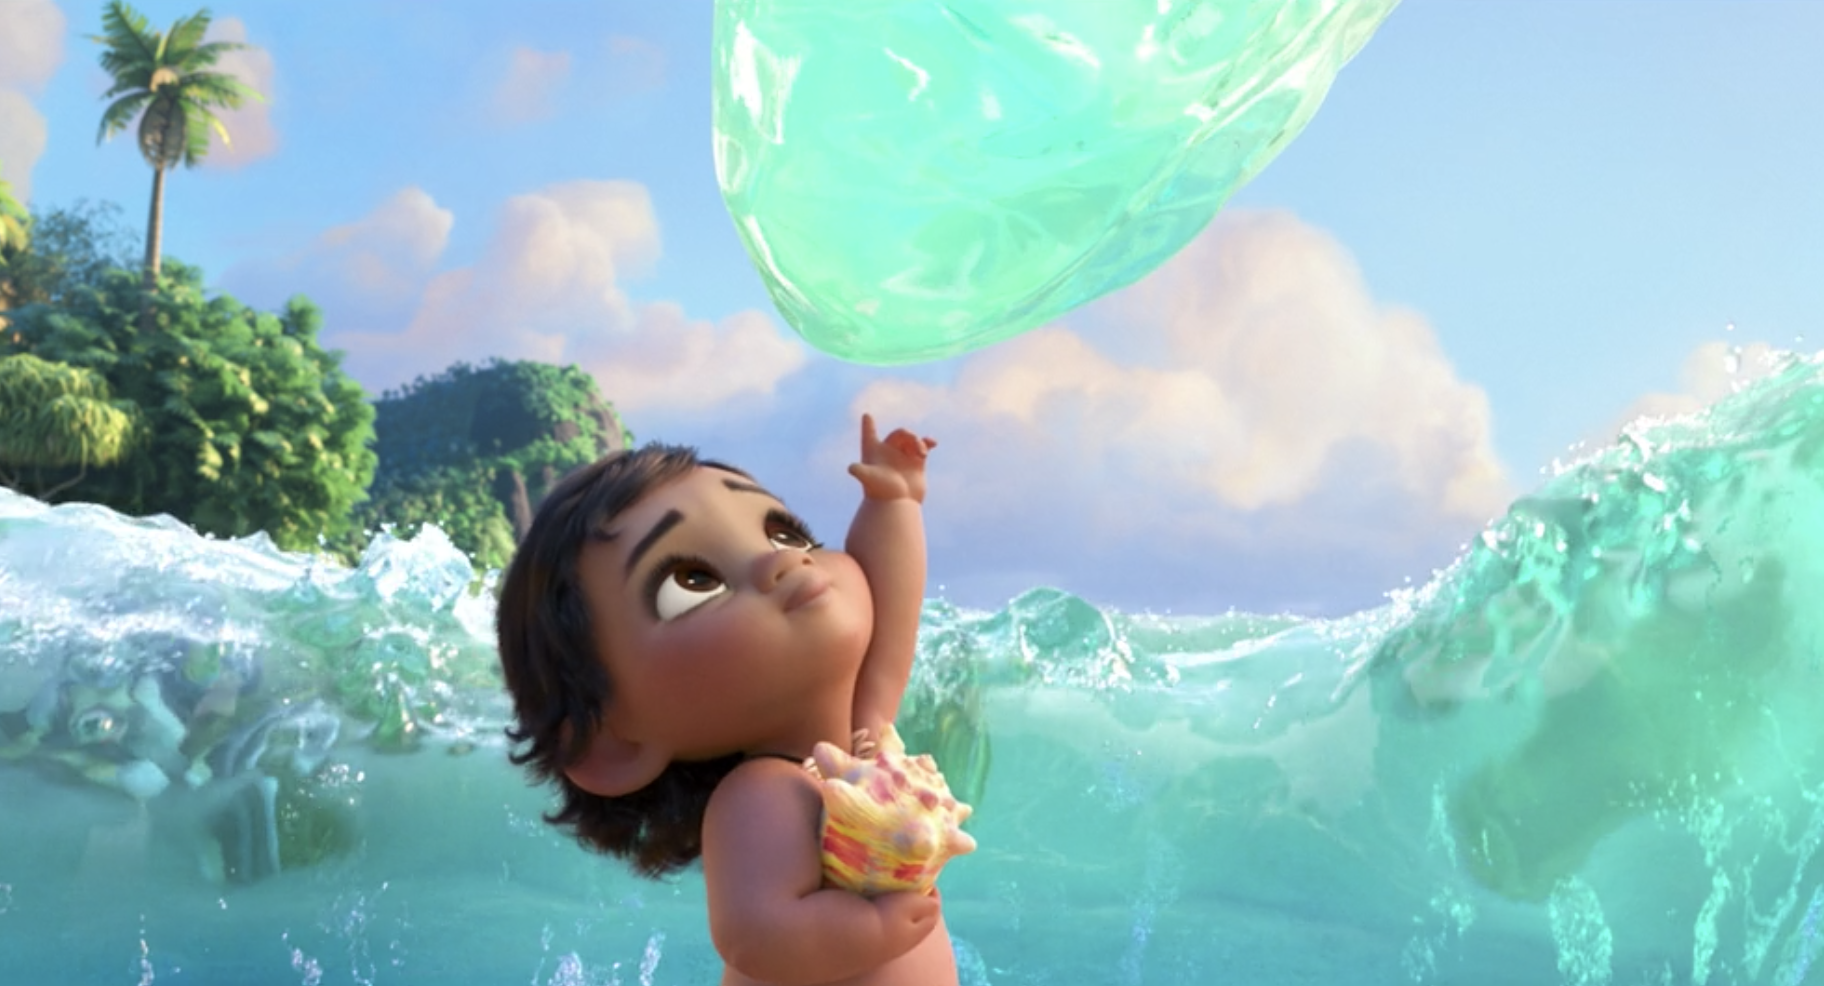 Moana touching the ocean, which is hanging over her magically